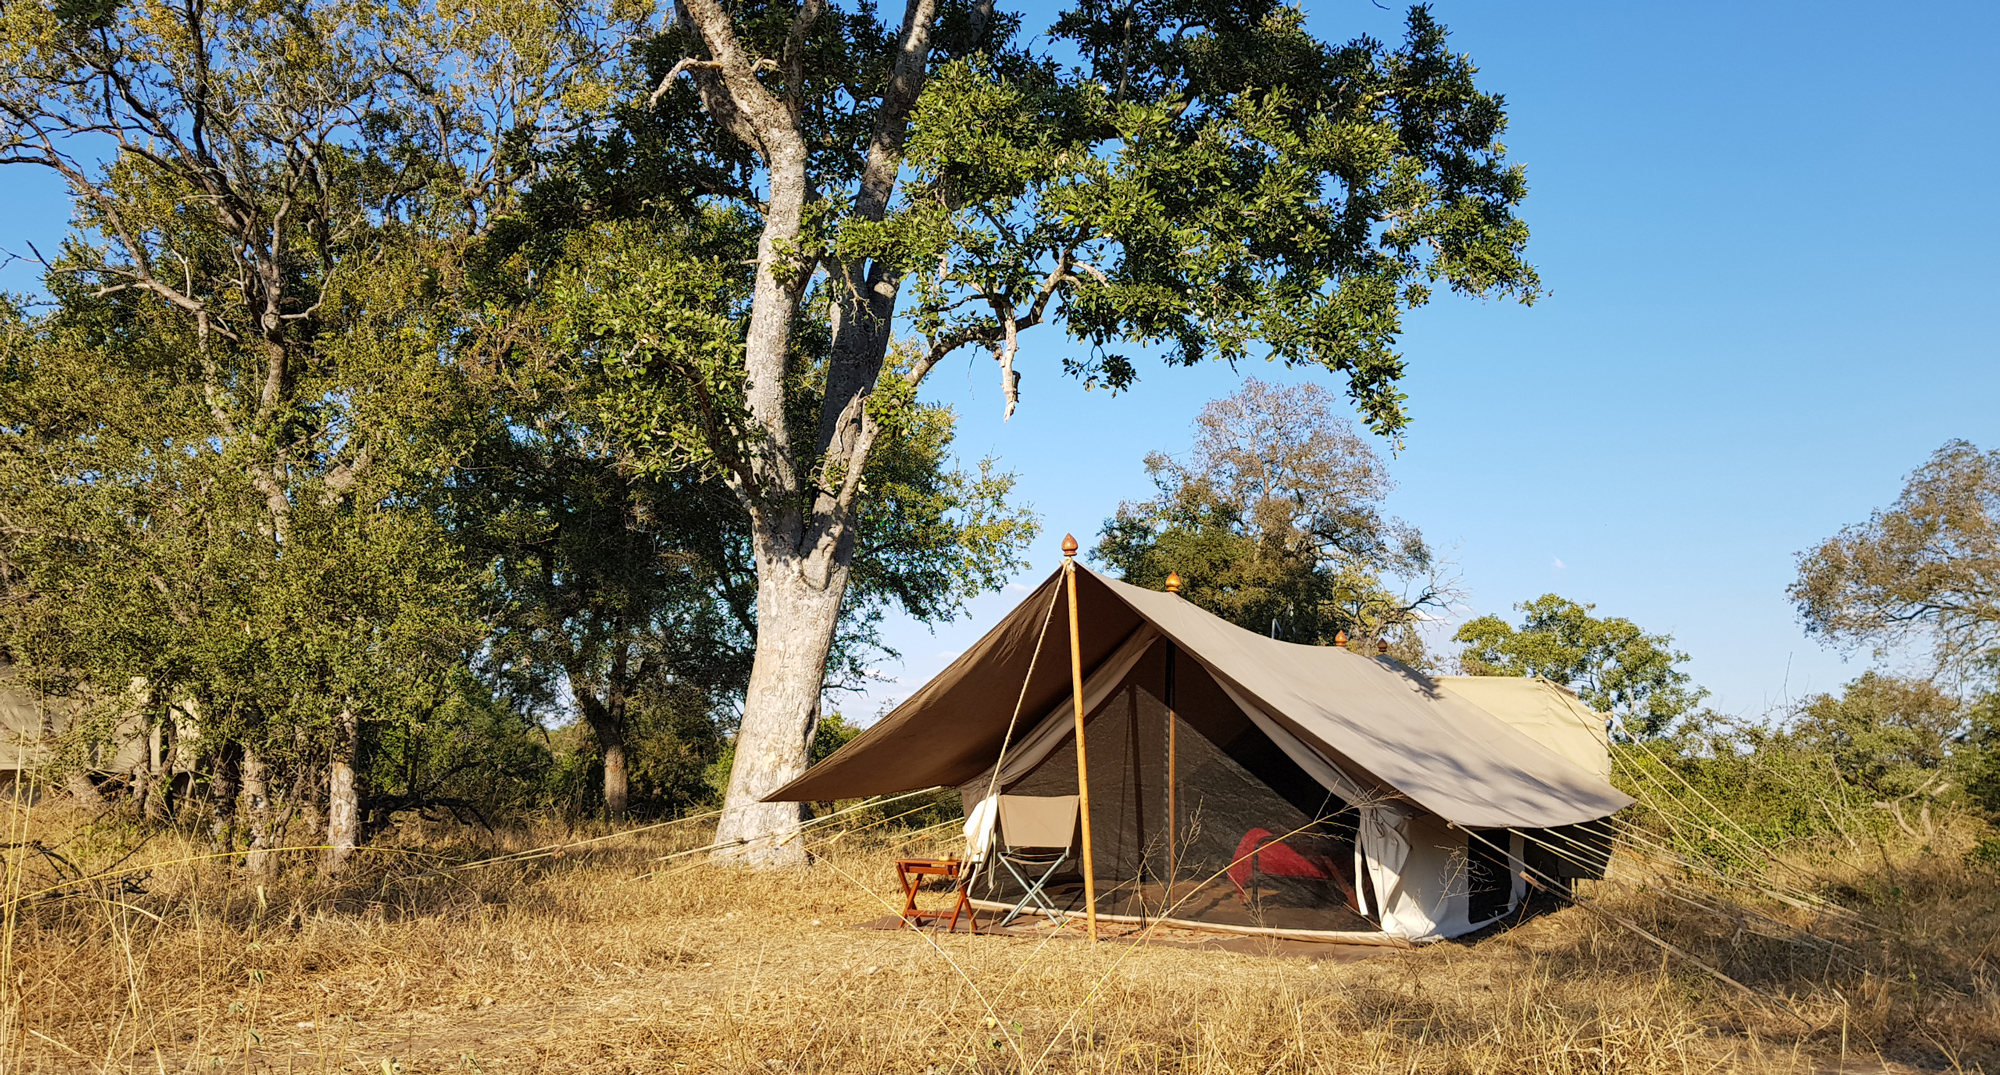 The tent accommodation at Tanda Tula Field Camp